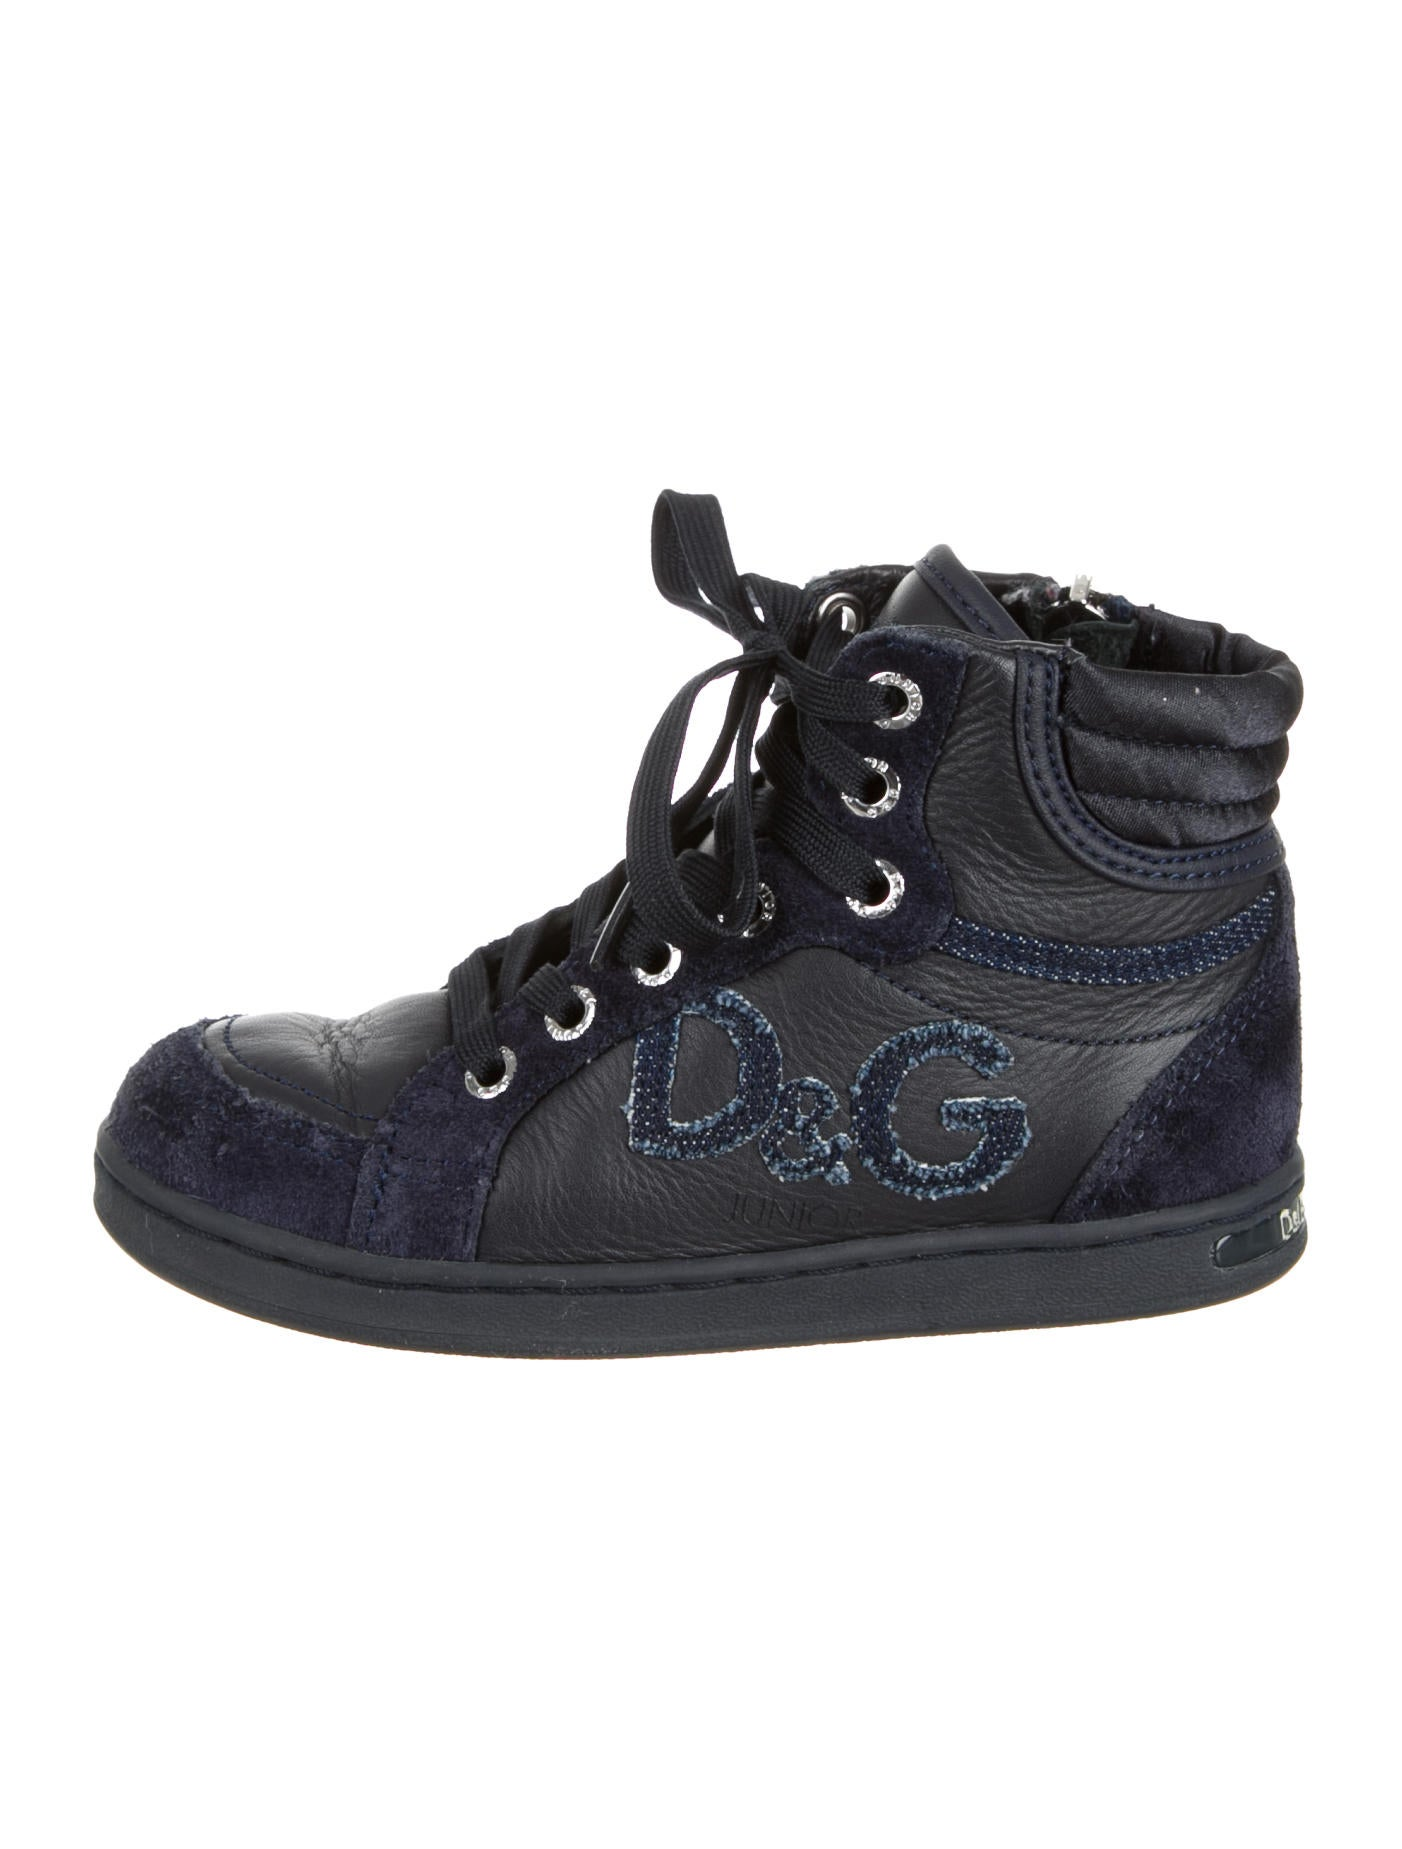 Free shipping on boys' shoes at truexfilepv.cf Shop for shoes for boys from your favorite brands. Totally free shipping and returns.